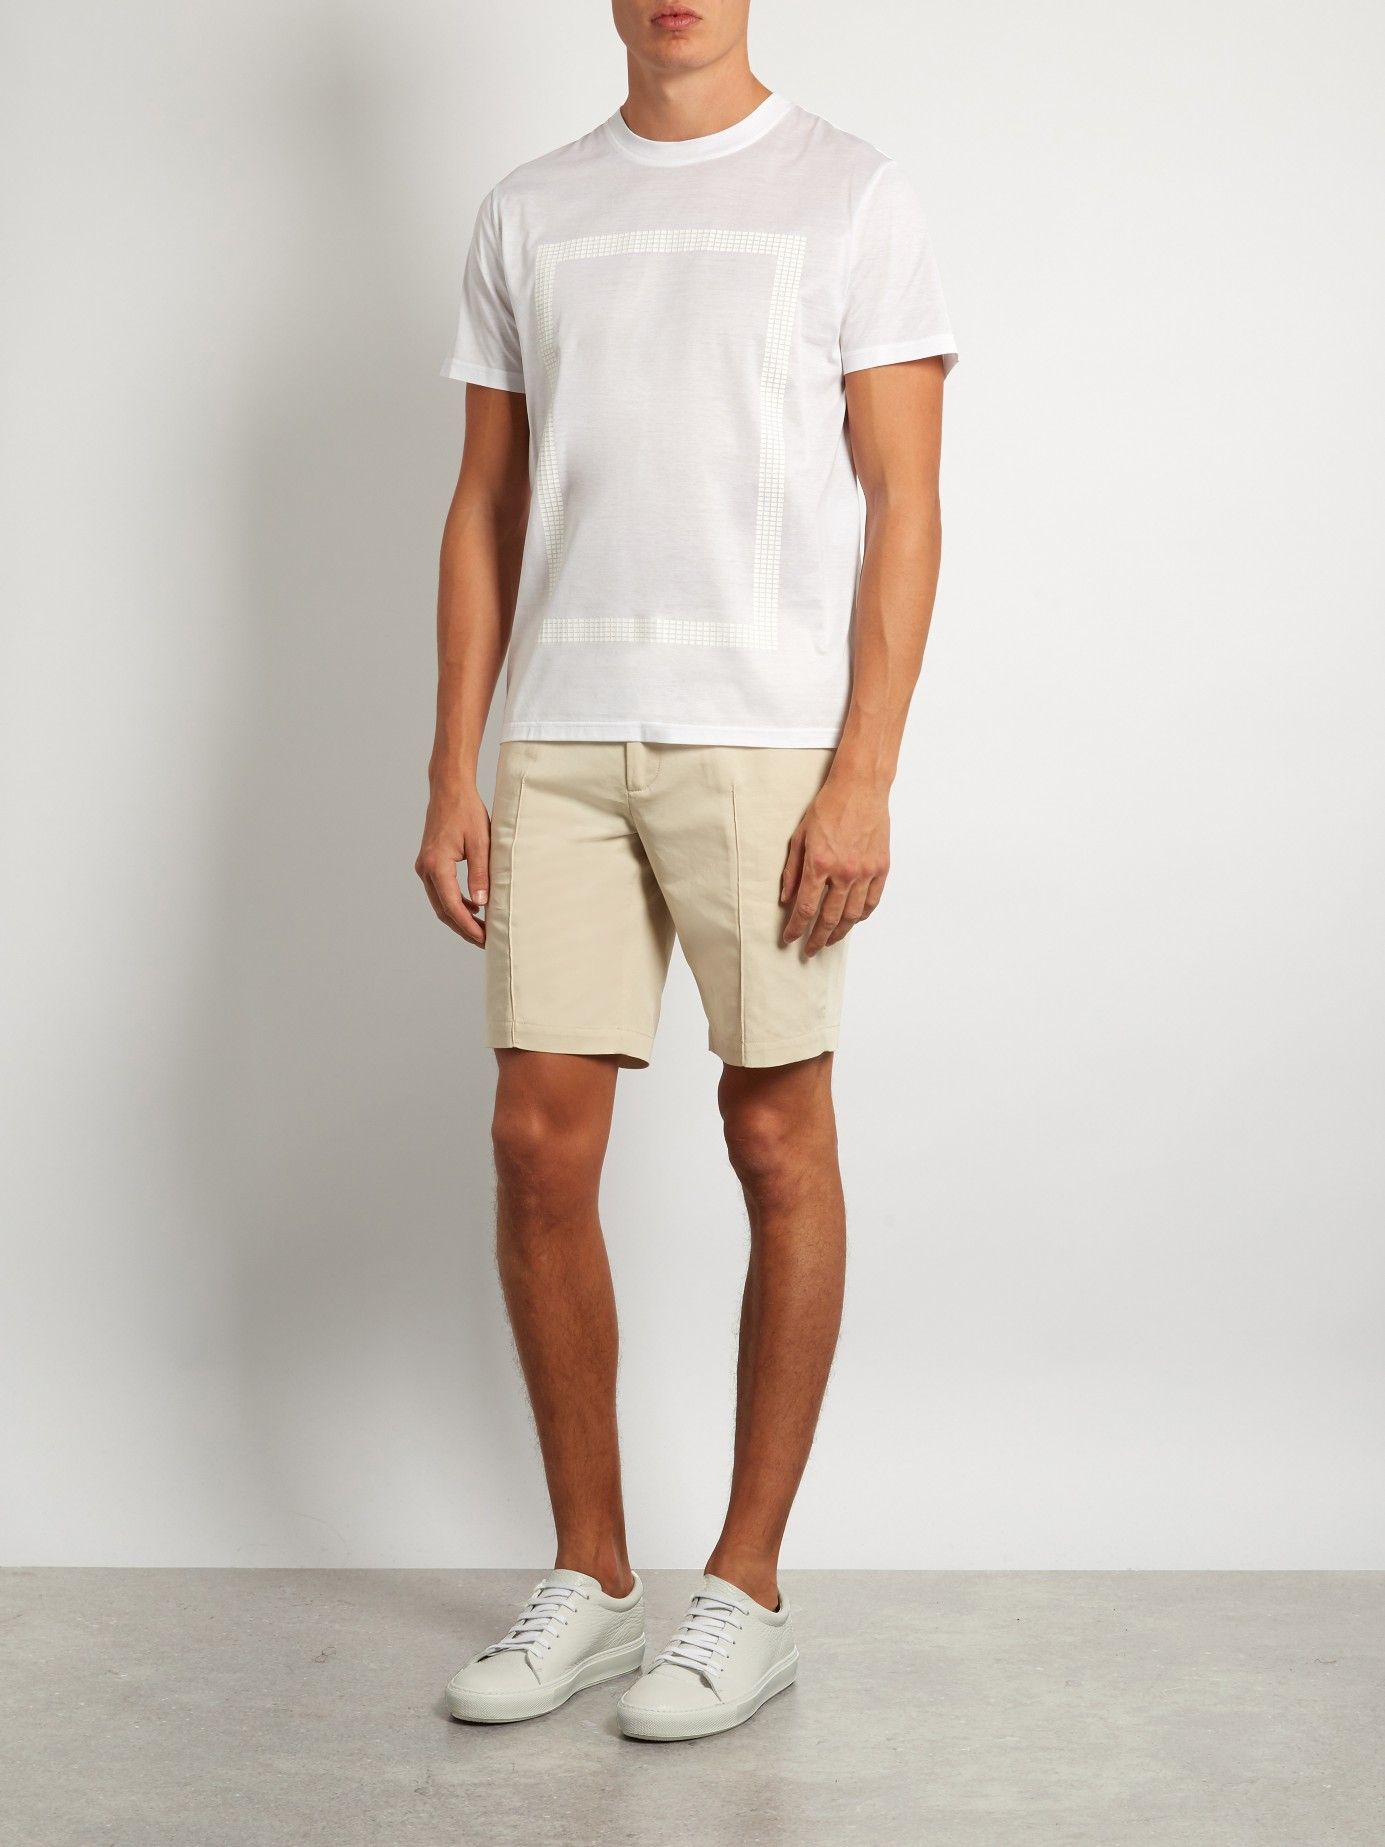 Elevate casual city looks with Calvin Klein Collection's beige Tropic chino  shorts. They're crafted from a refined blend of cotton and linen to a slim,  ...